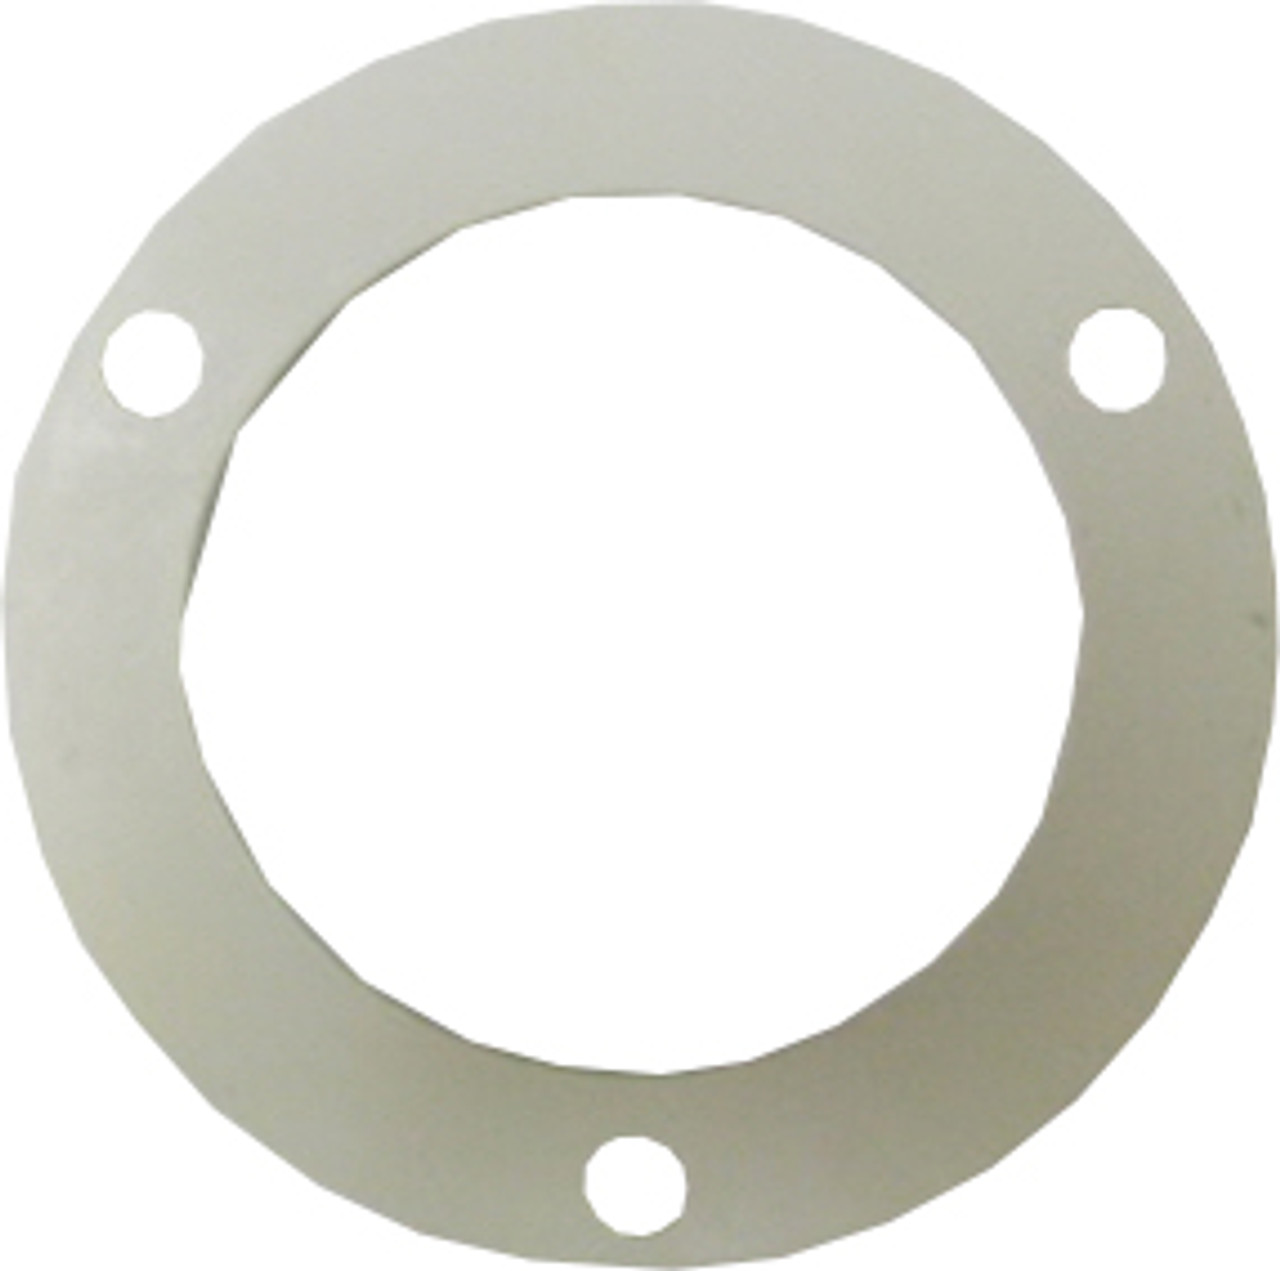 2000 161 Jacuzzi Htc Jet Clamping Ring Gasket